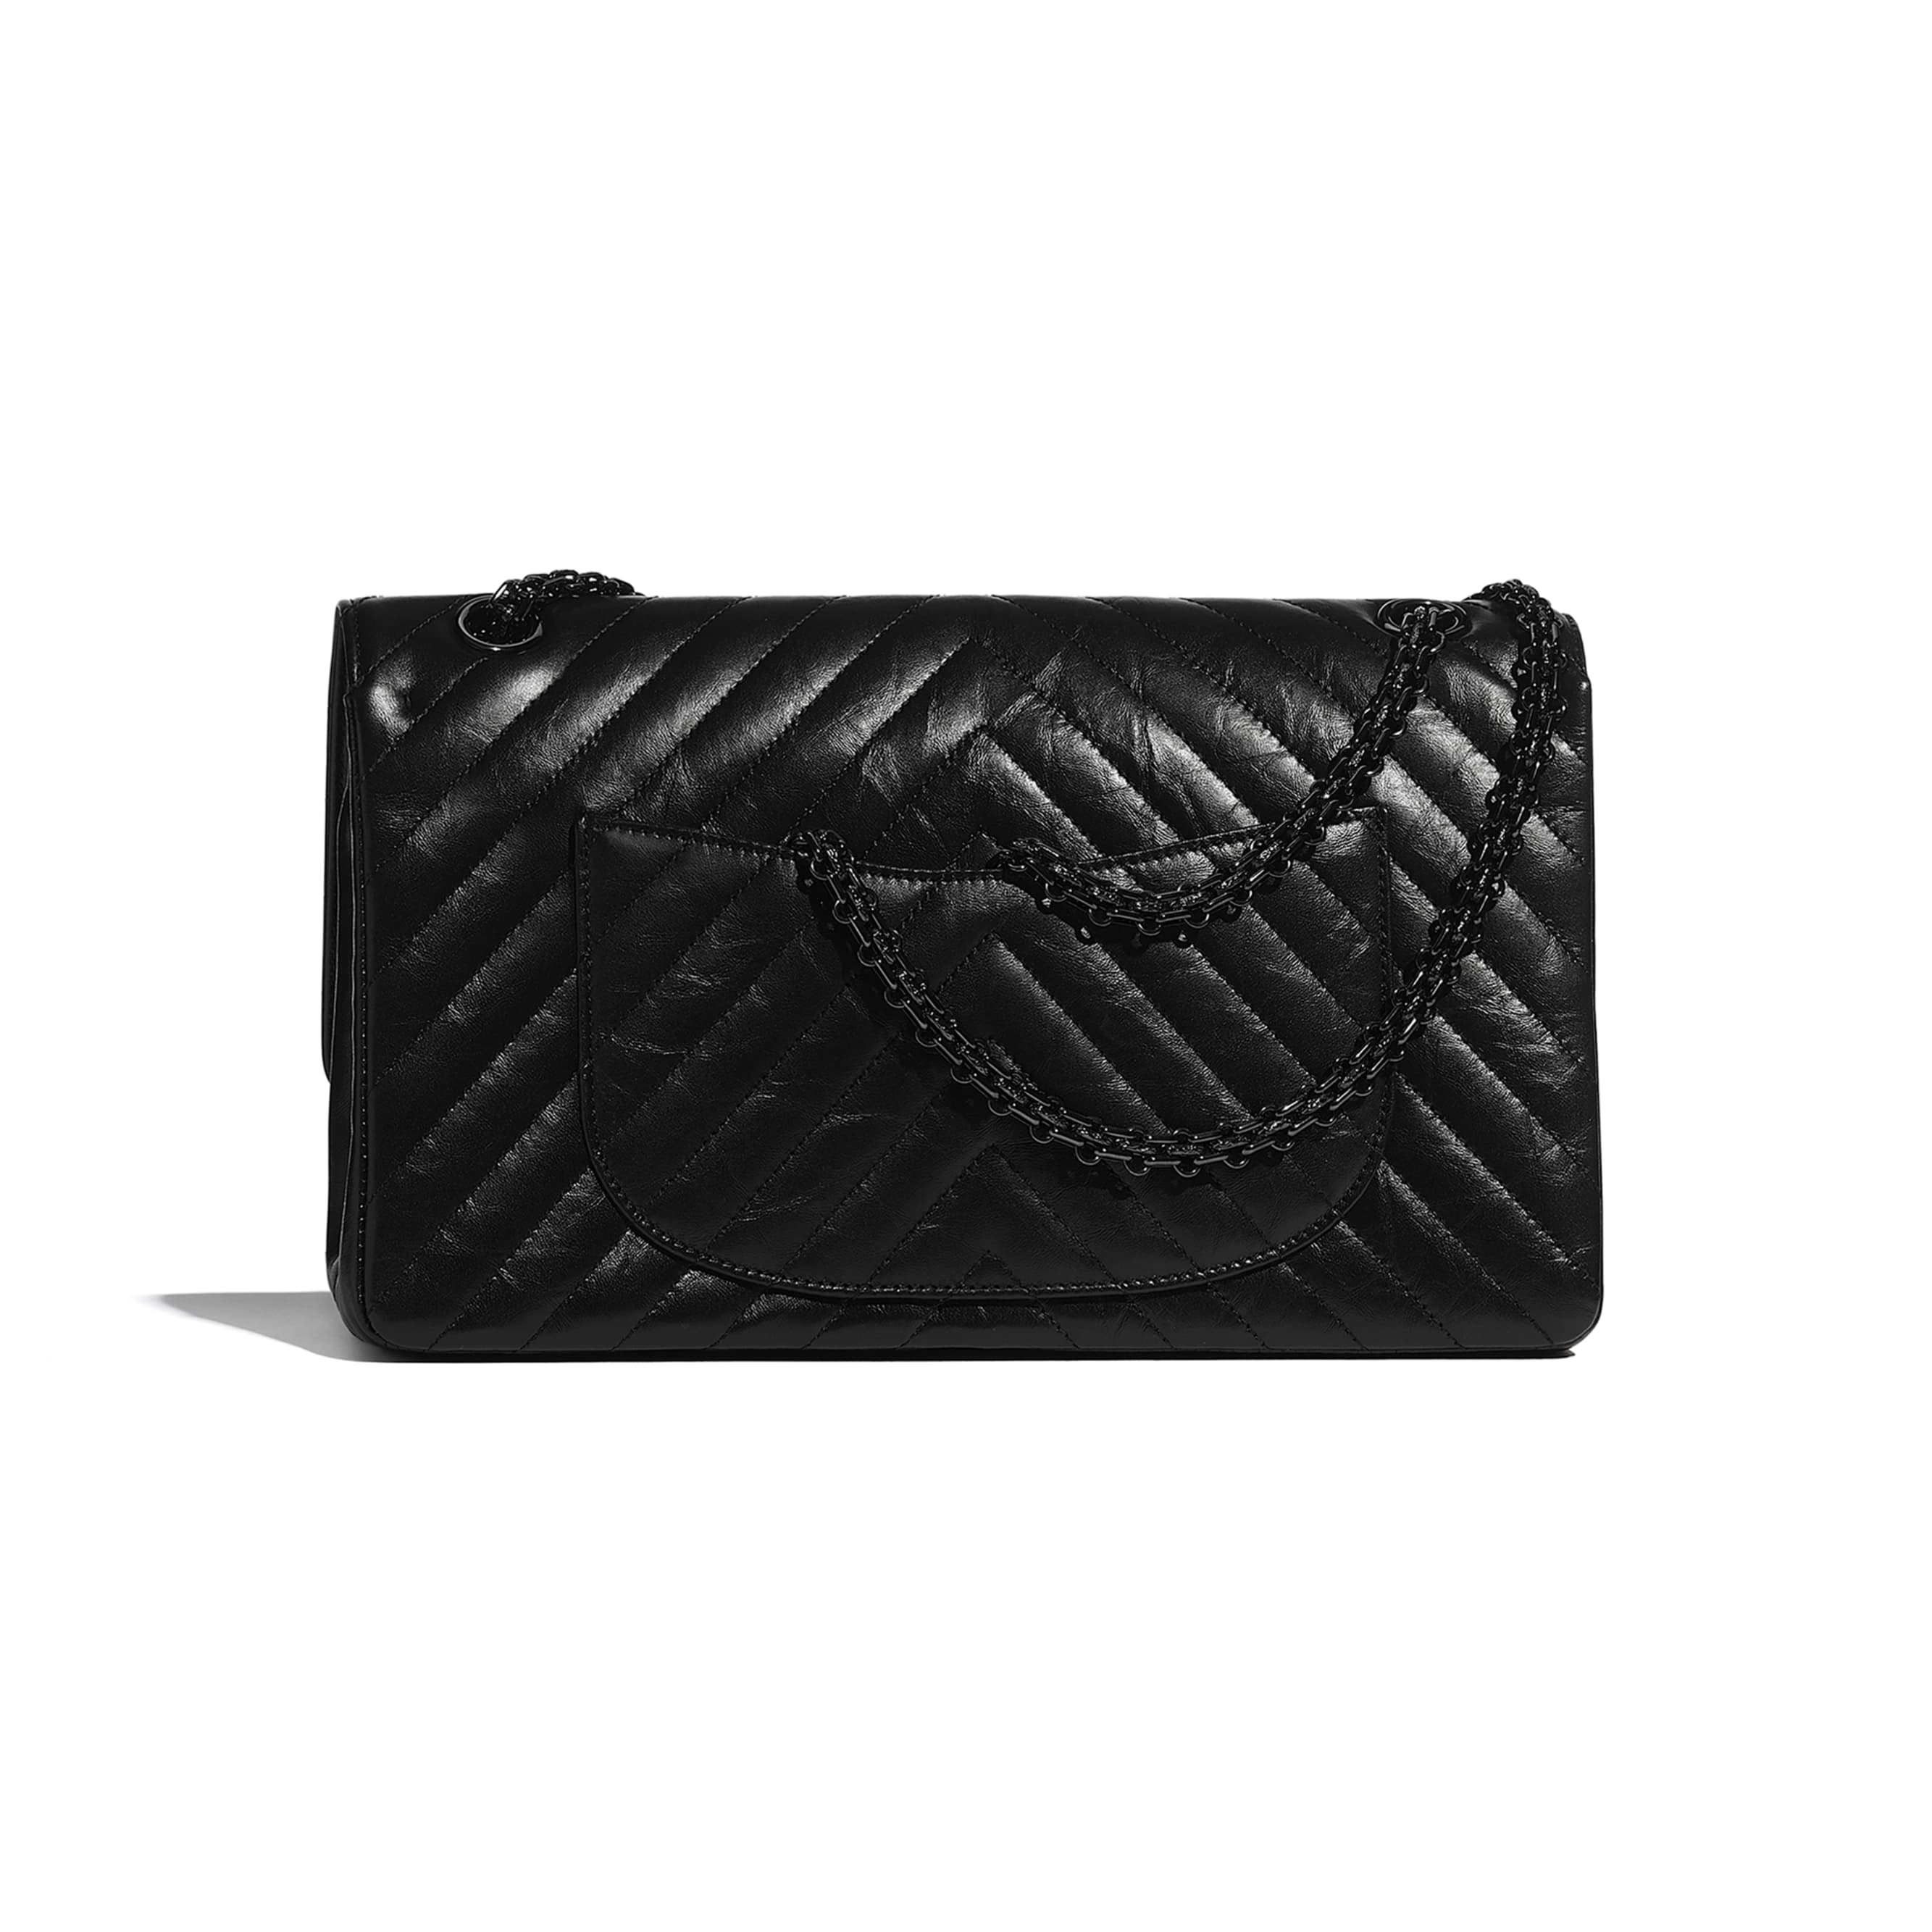 Large 2.55 Handbag - Black - Aged Calfskin & Black Metal - CHANEL - Alternative view - see standard sized version